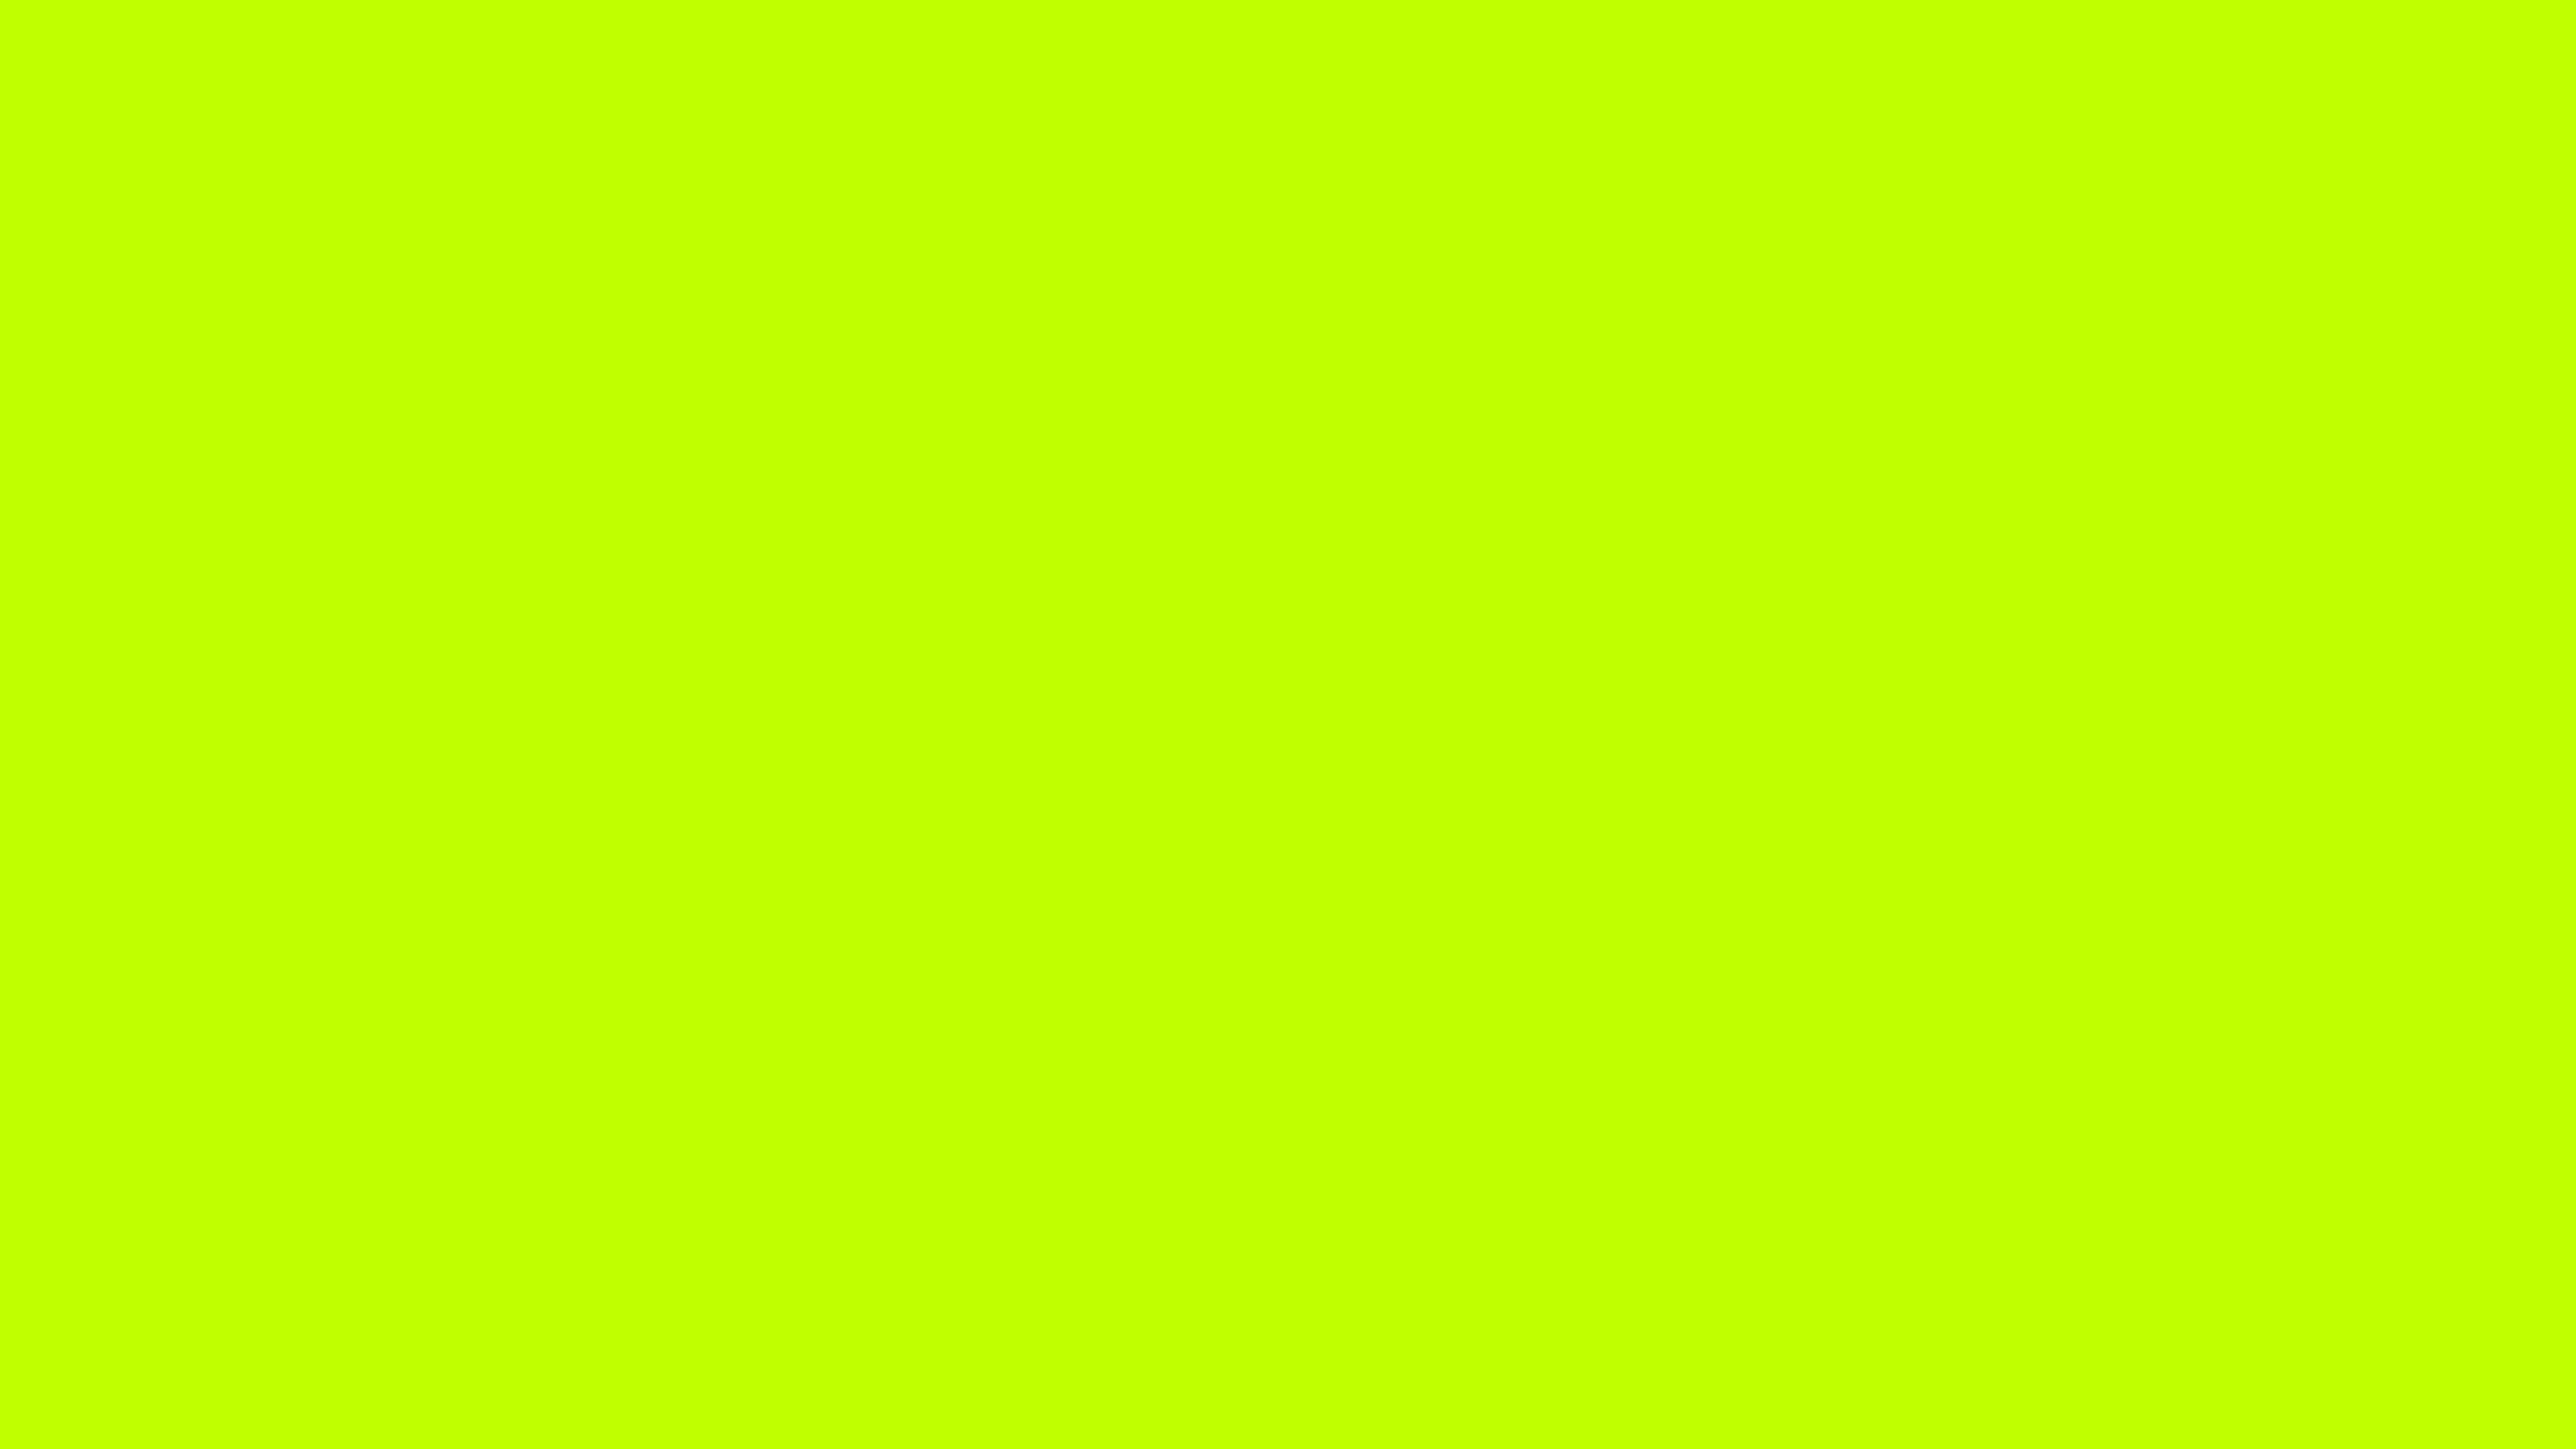 4096x2304 Bitter Lime Solid Color Background